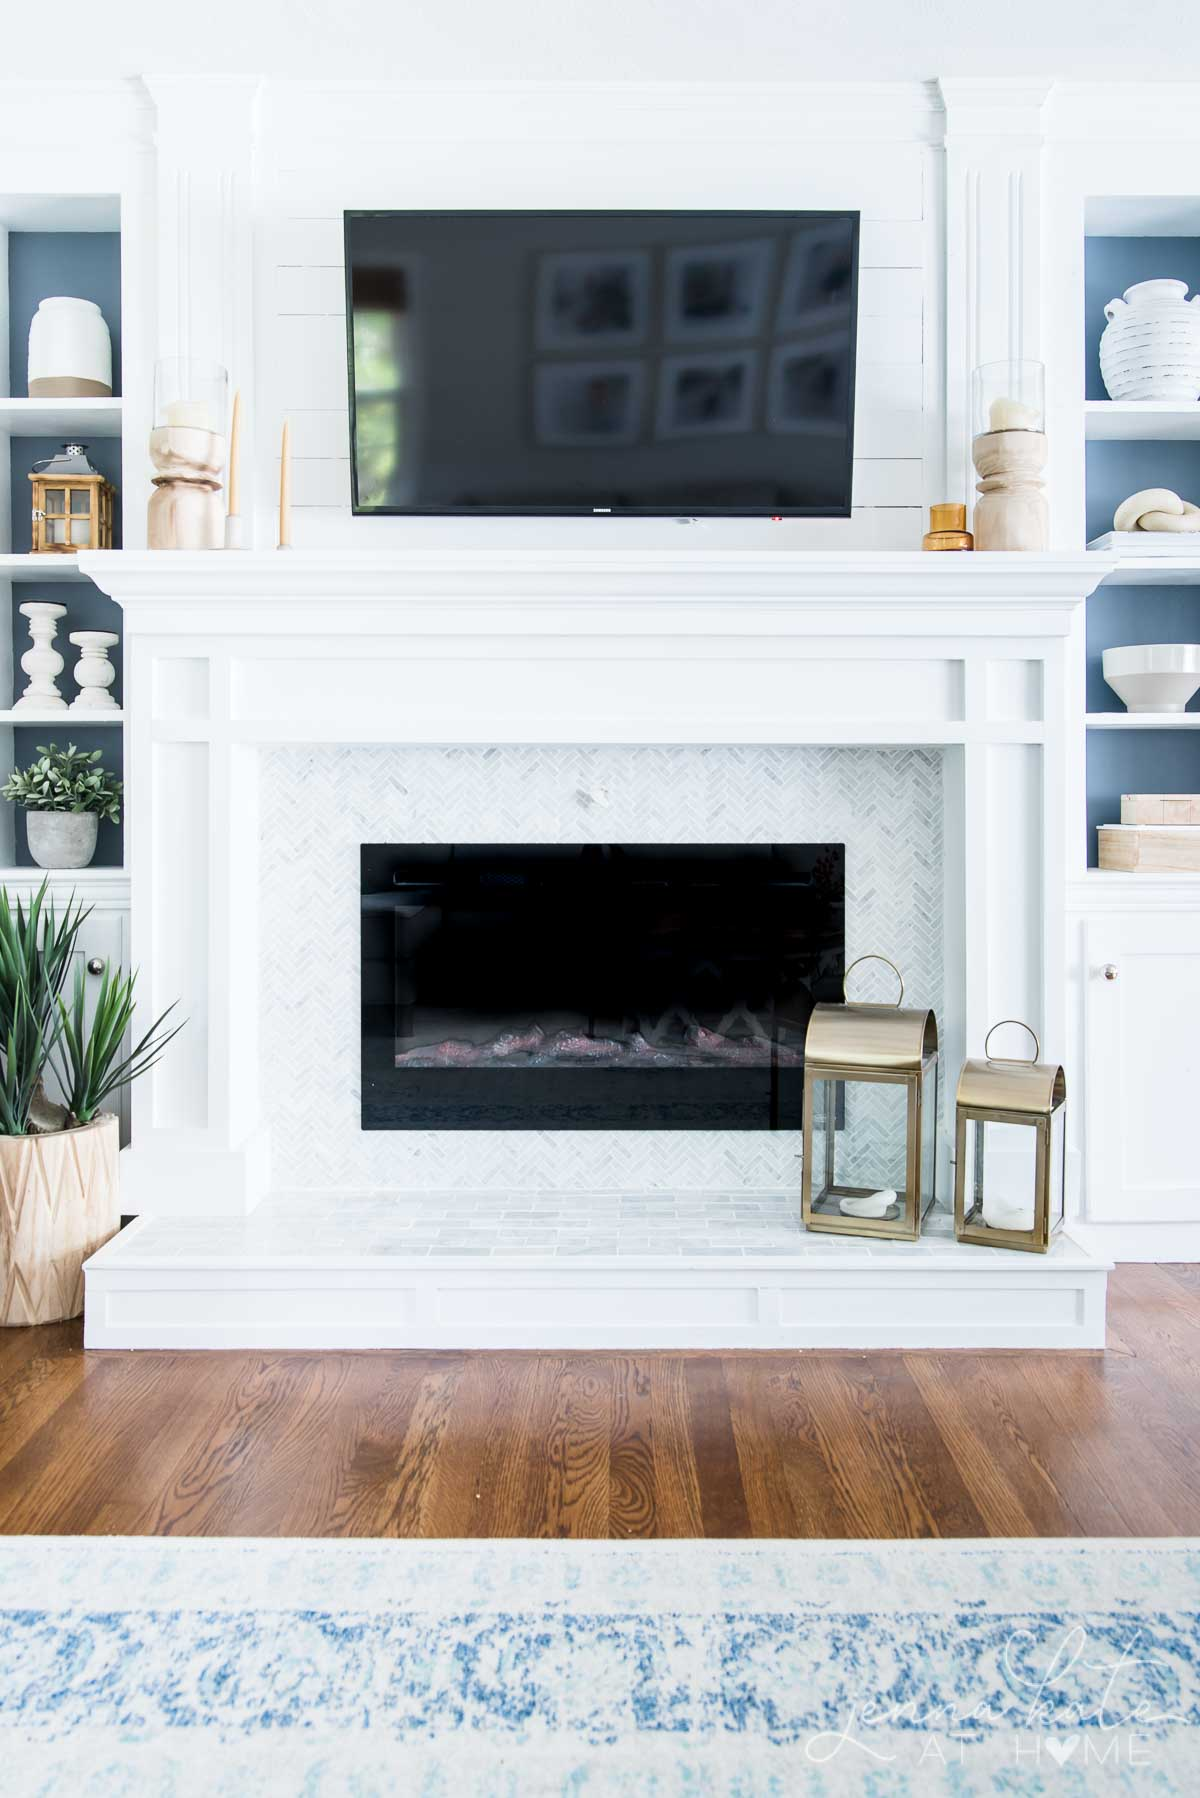 How to style a minimalist fireplace mantel for fall